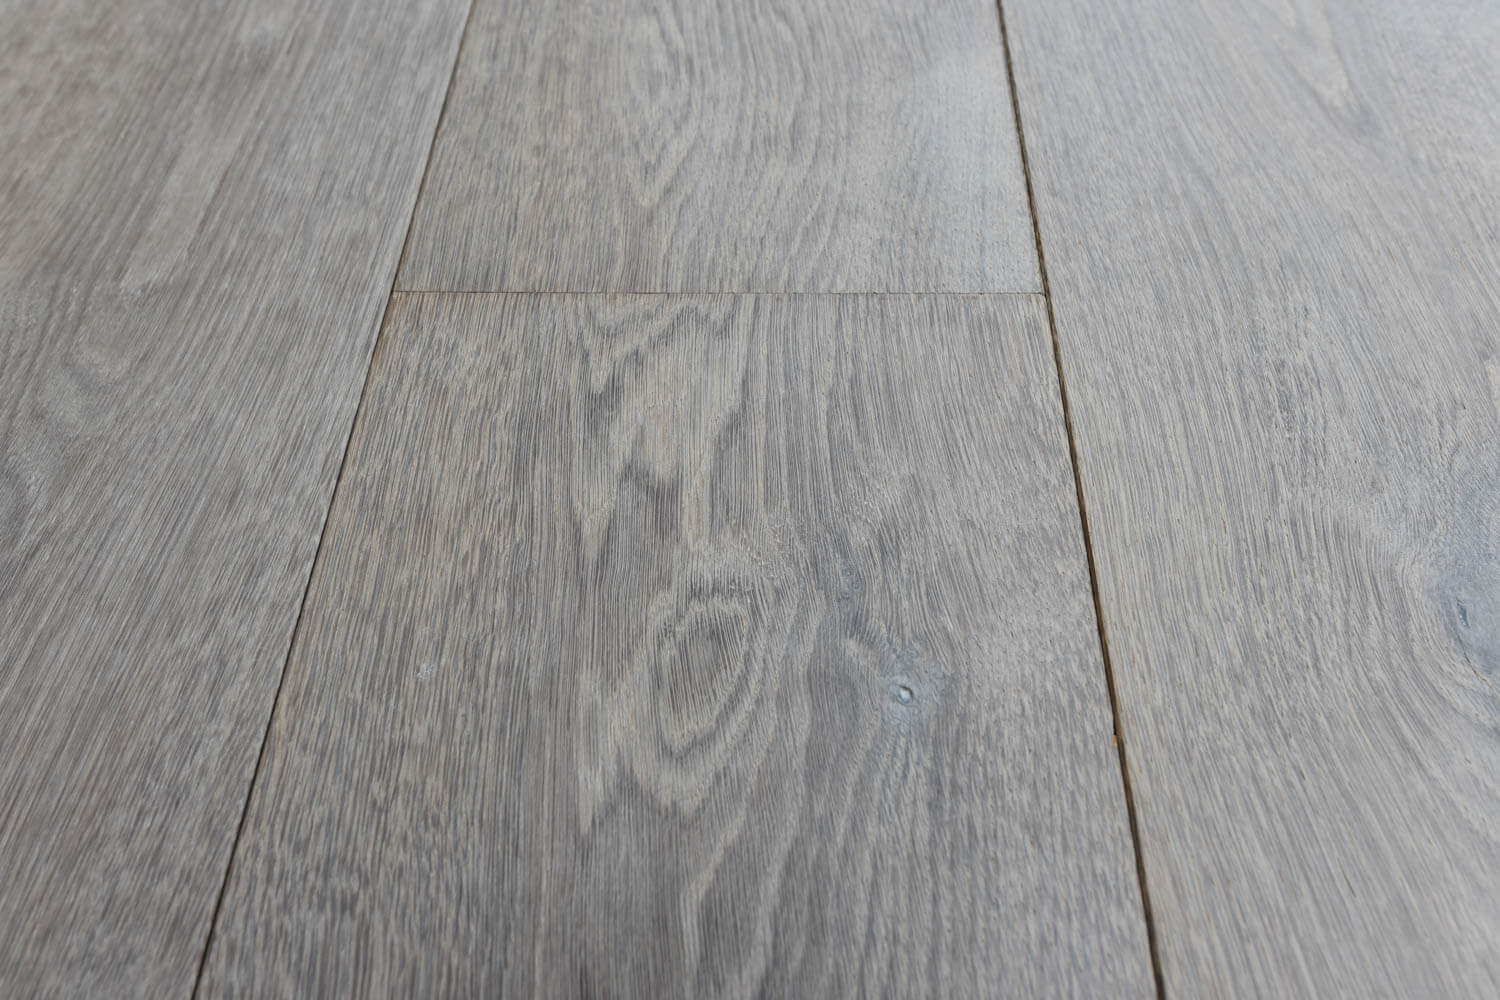 3 Oak Floor Product Aged Slate Grey